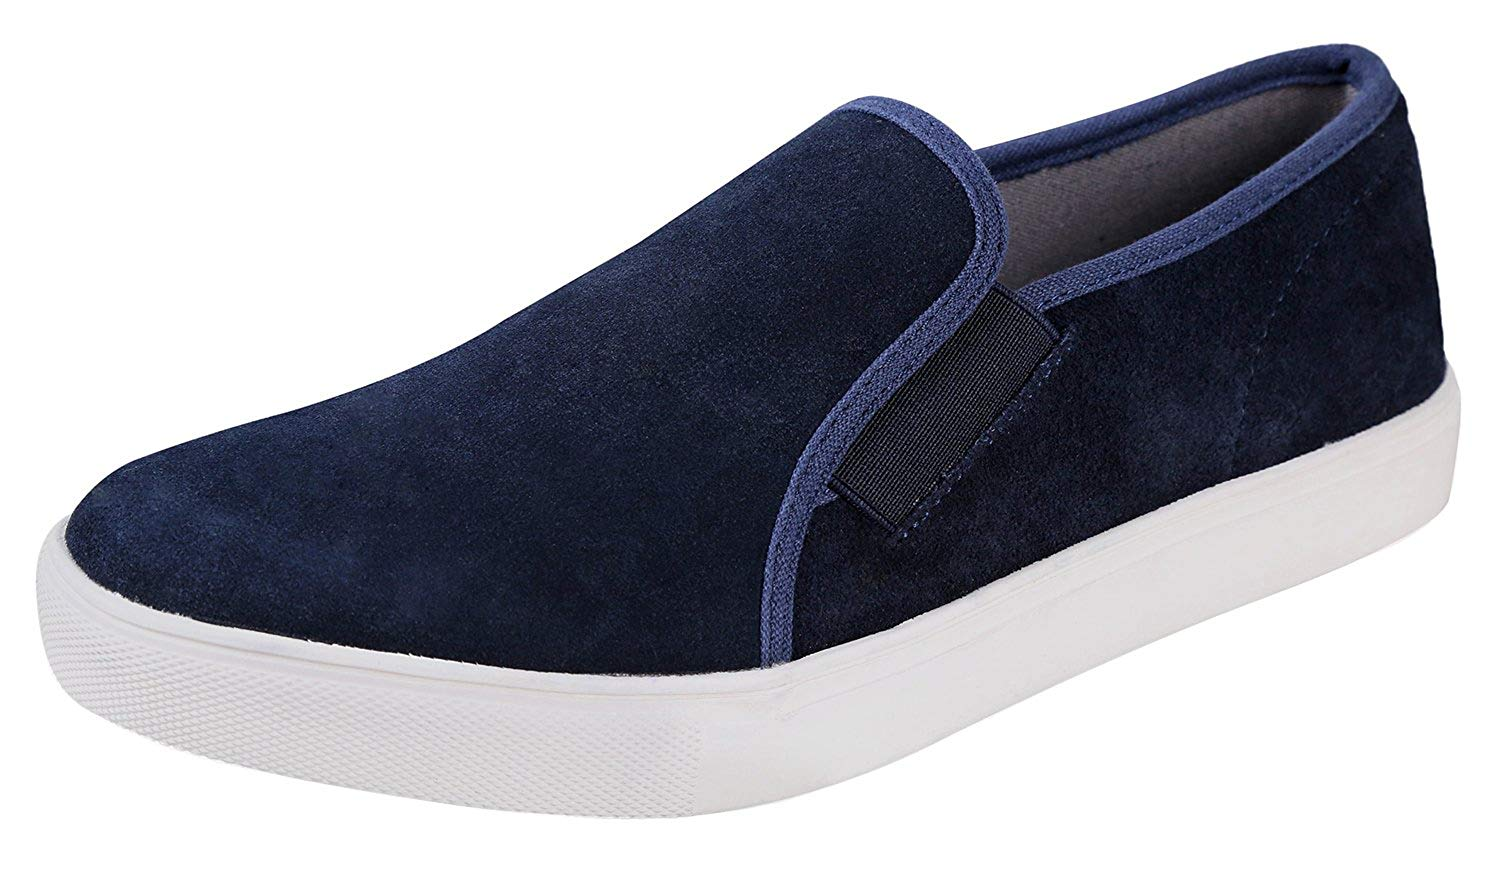 Urban Fox Men's Francis Suede Slip-On Fashion Sneakers | Mens Slip On Shoes | Mens Sneakers | Suede Shoes